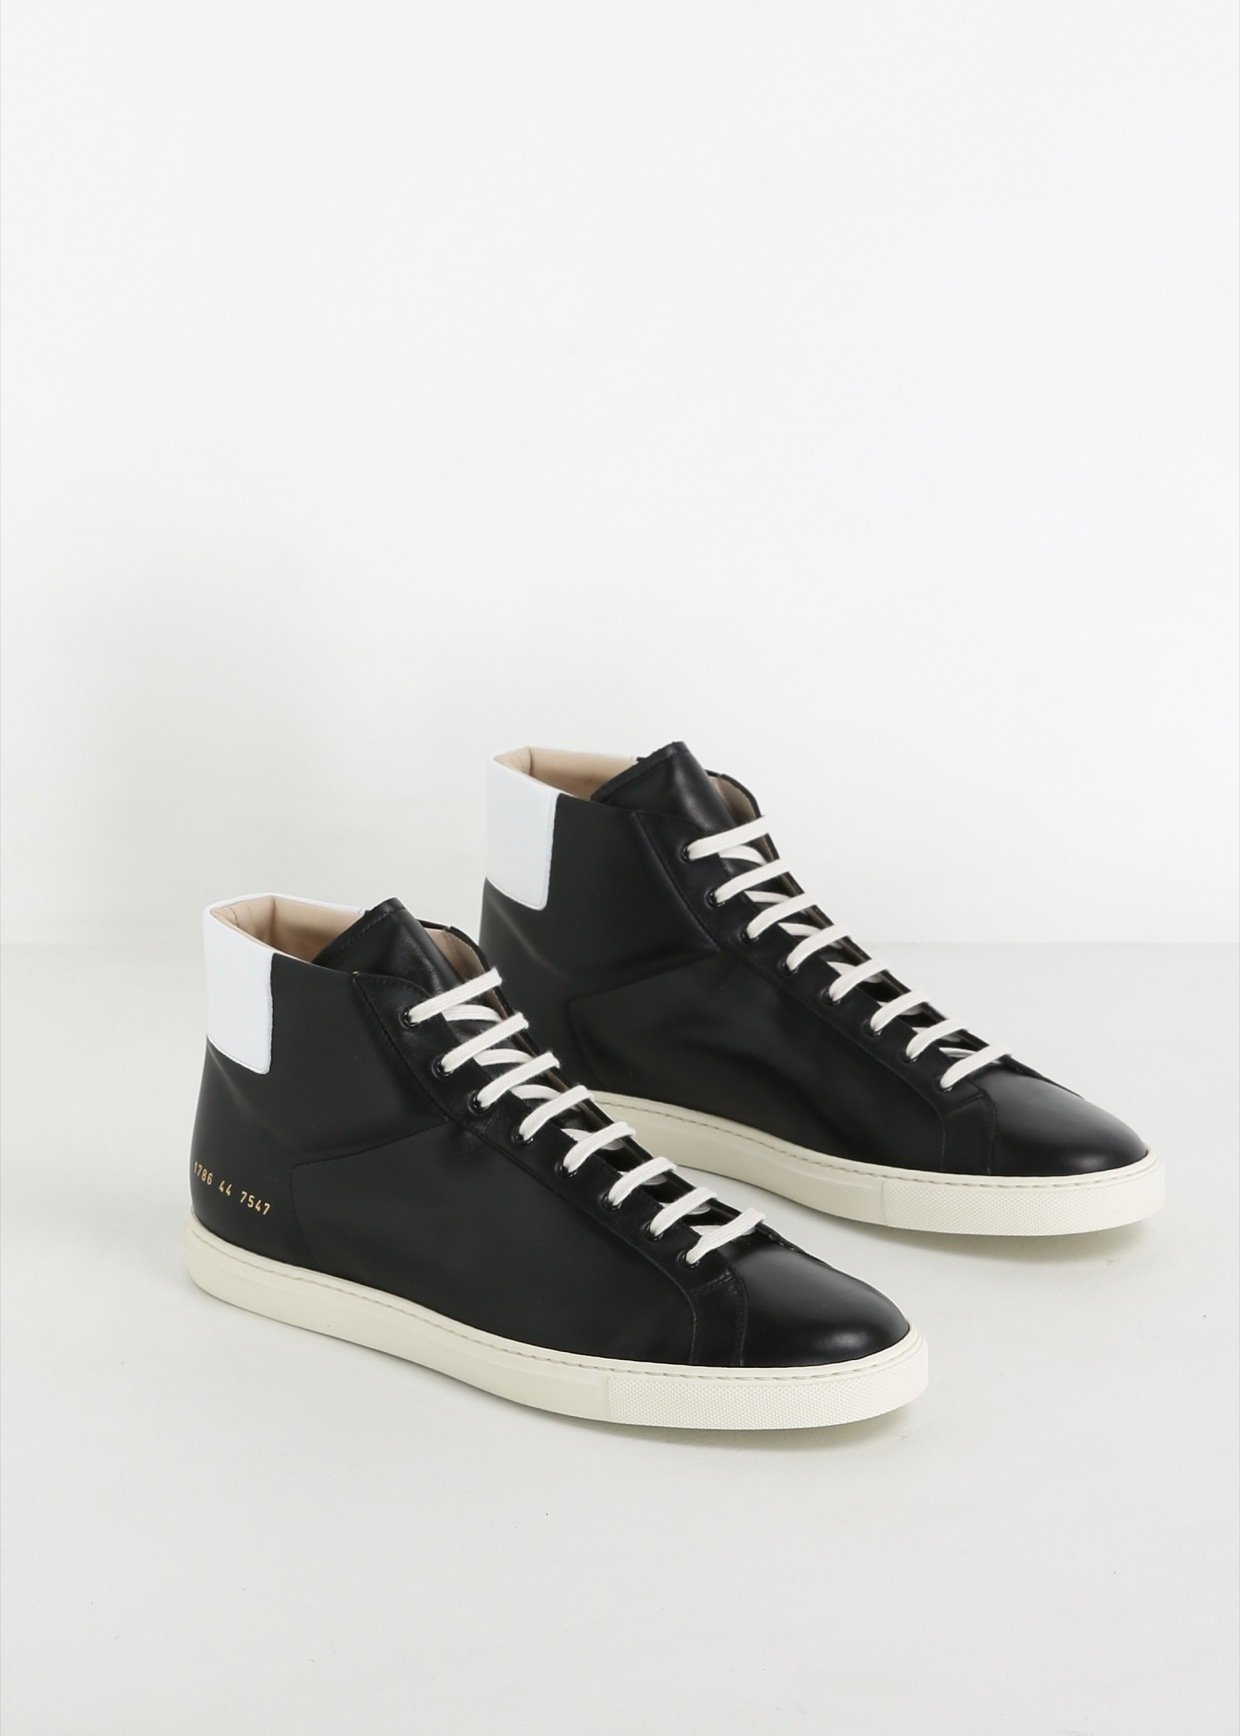 5c63a70787f35 Lyst - Common Projects Black Achilles Retro High Sneaker in Black ...